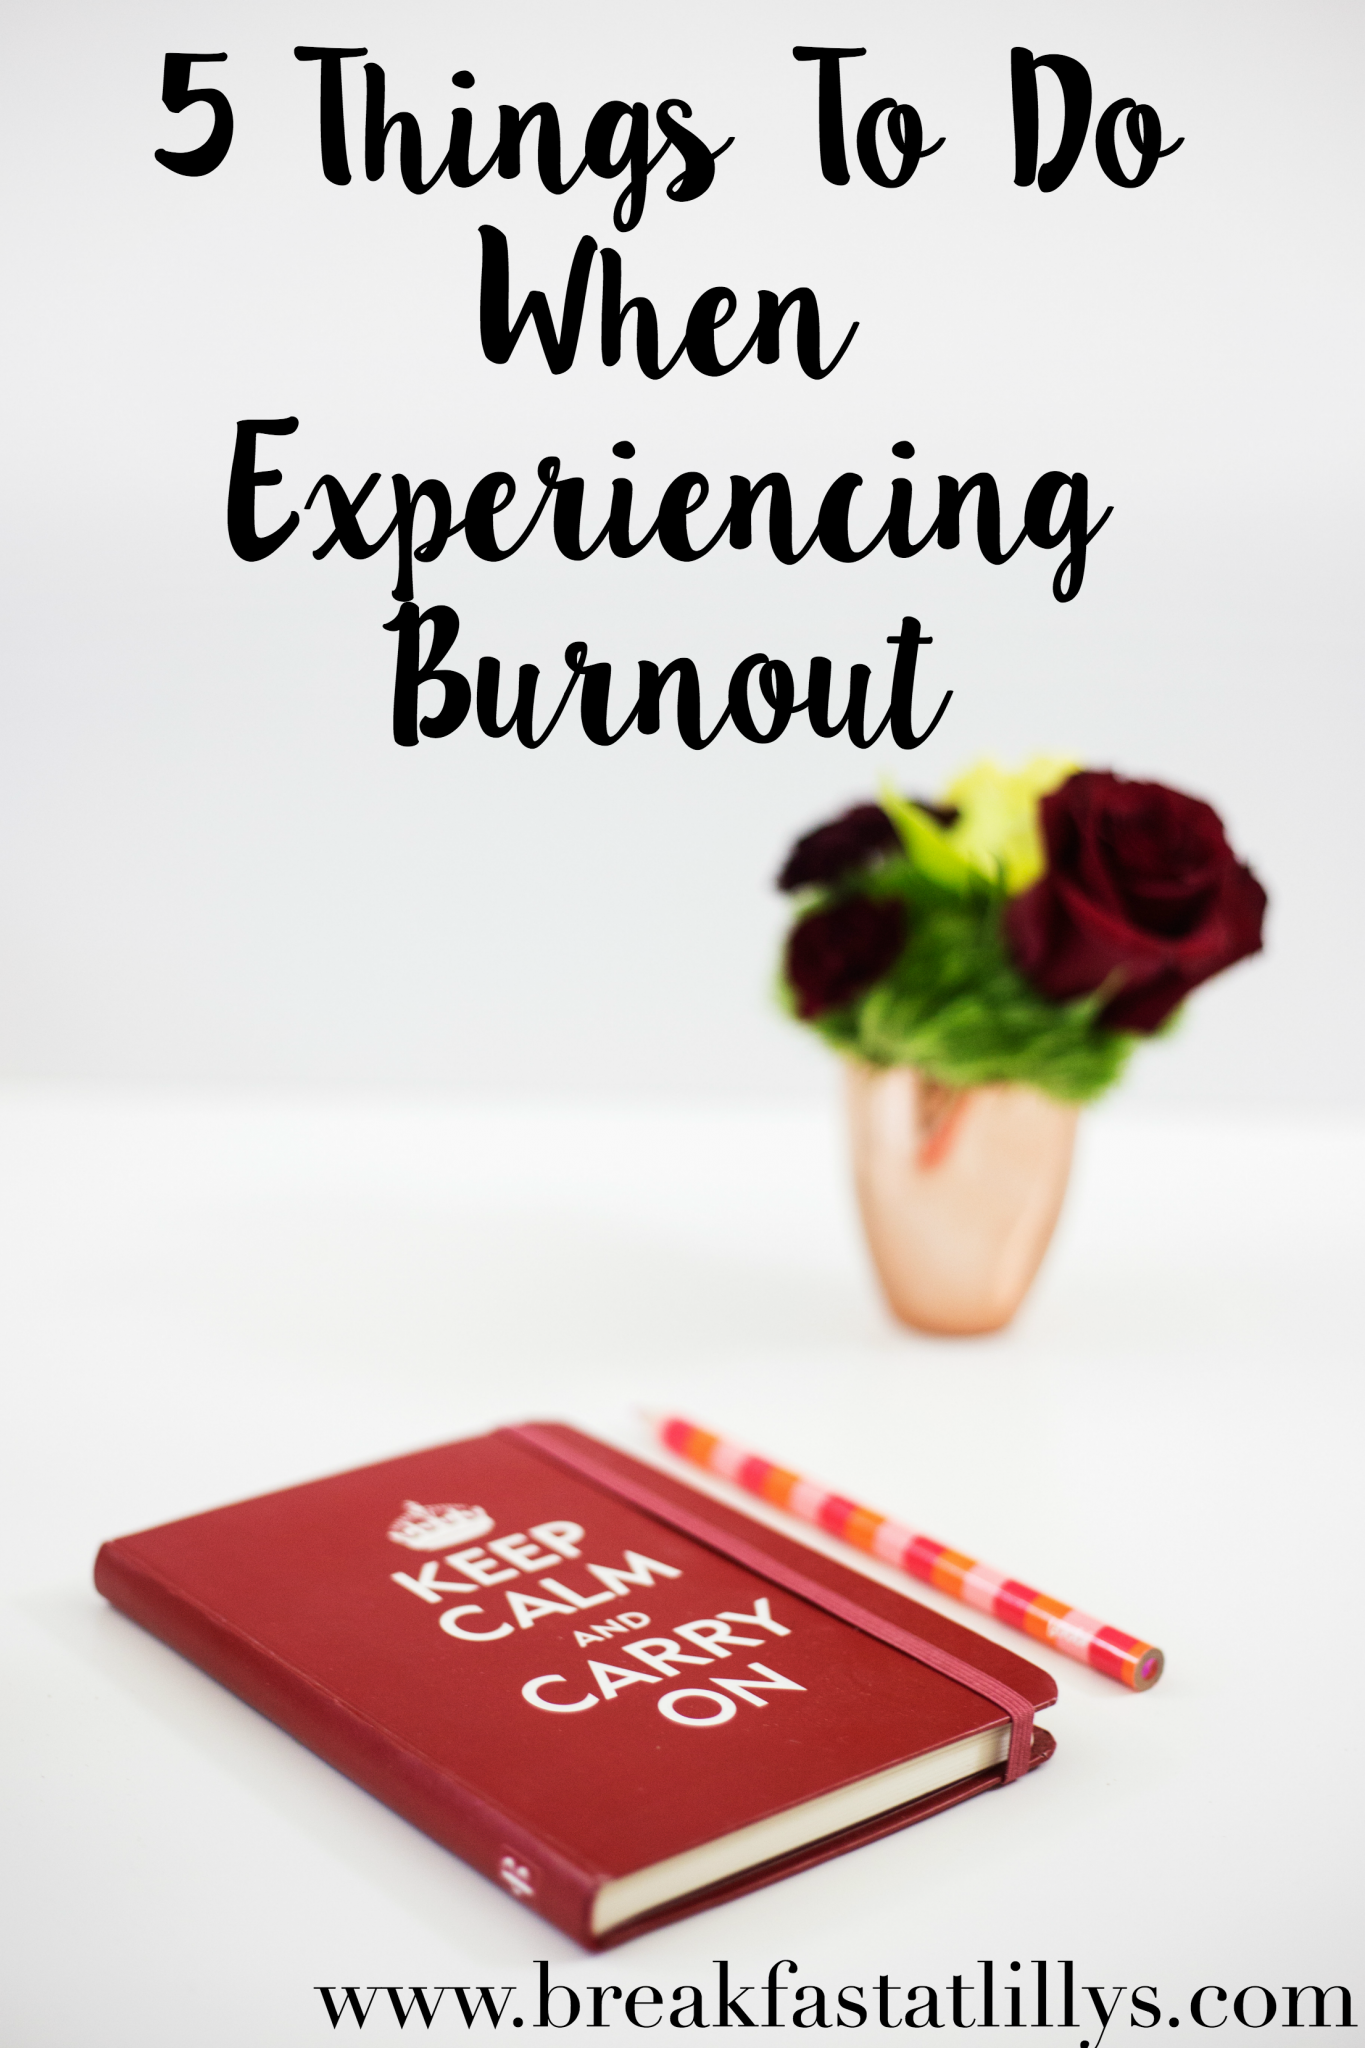 5 Things To Do When Experiencing Burnout